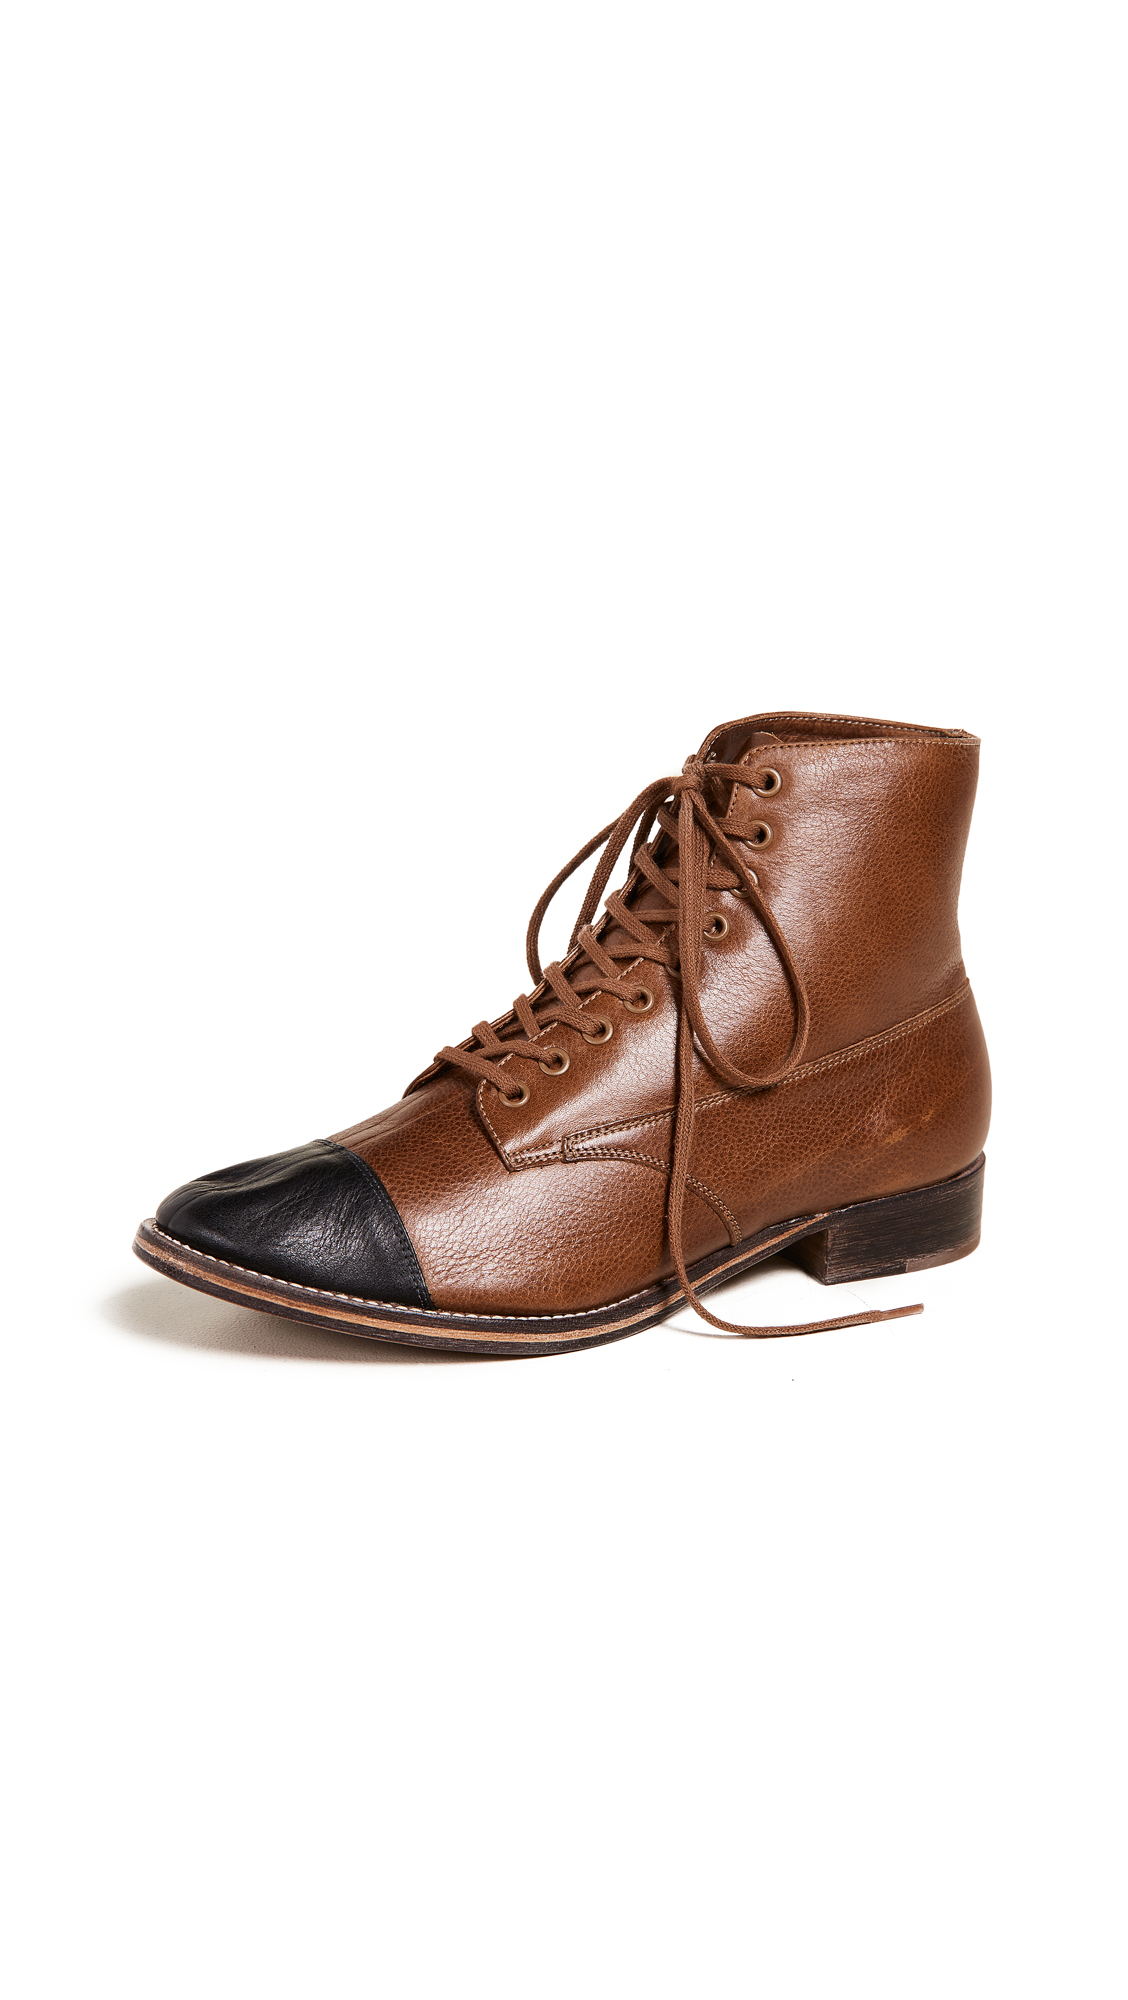 THE GREAT. The Cap Toe Boxcar Boots - Hickory/Black